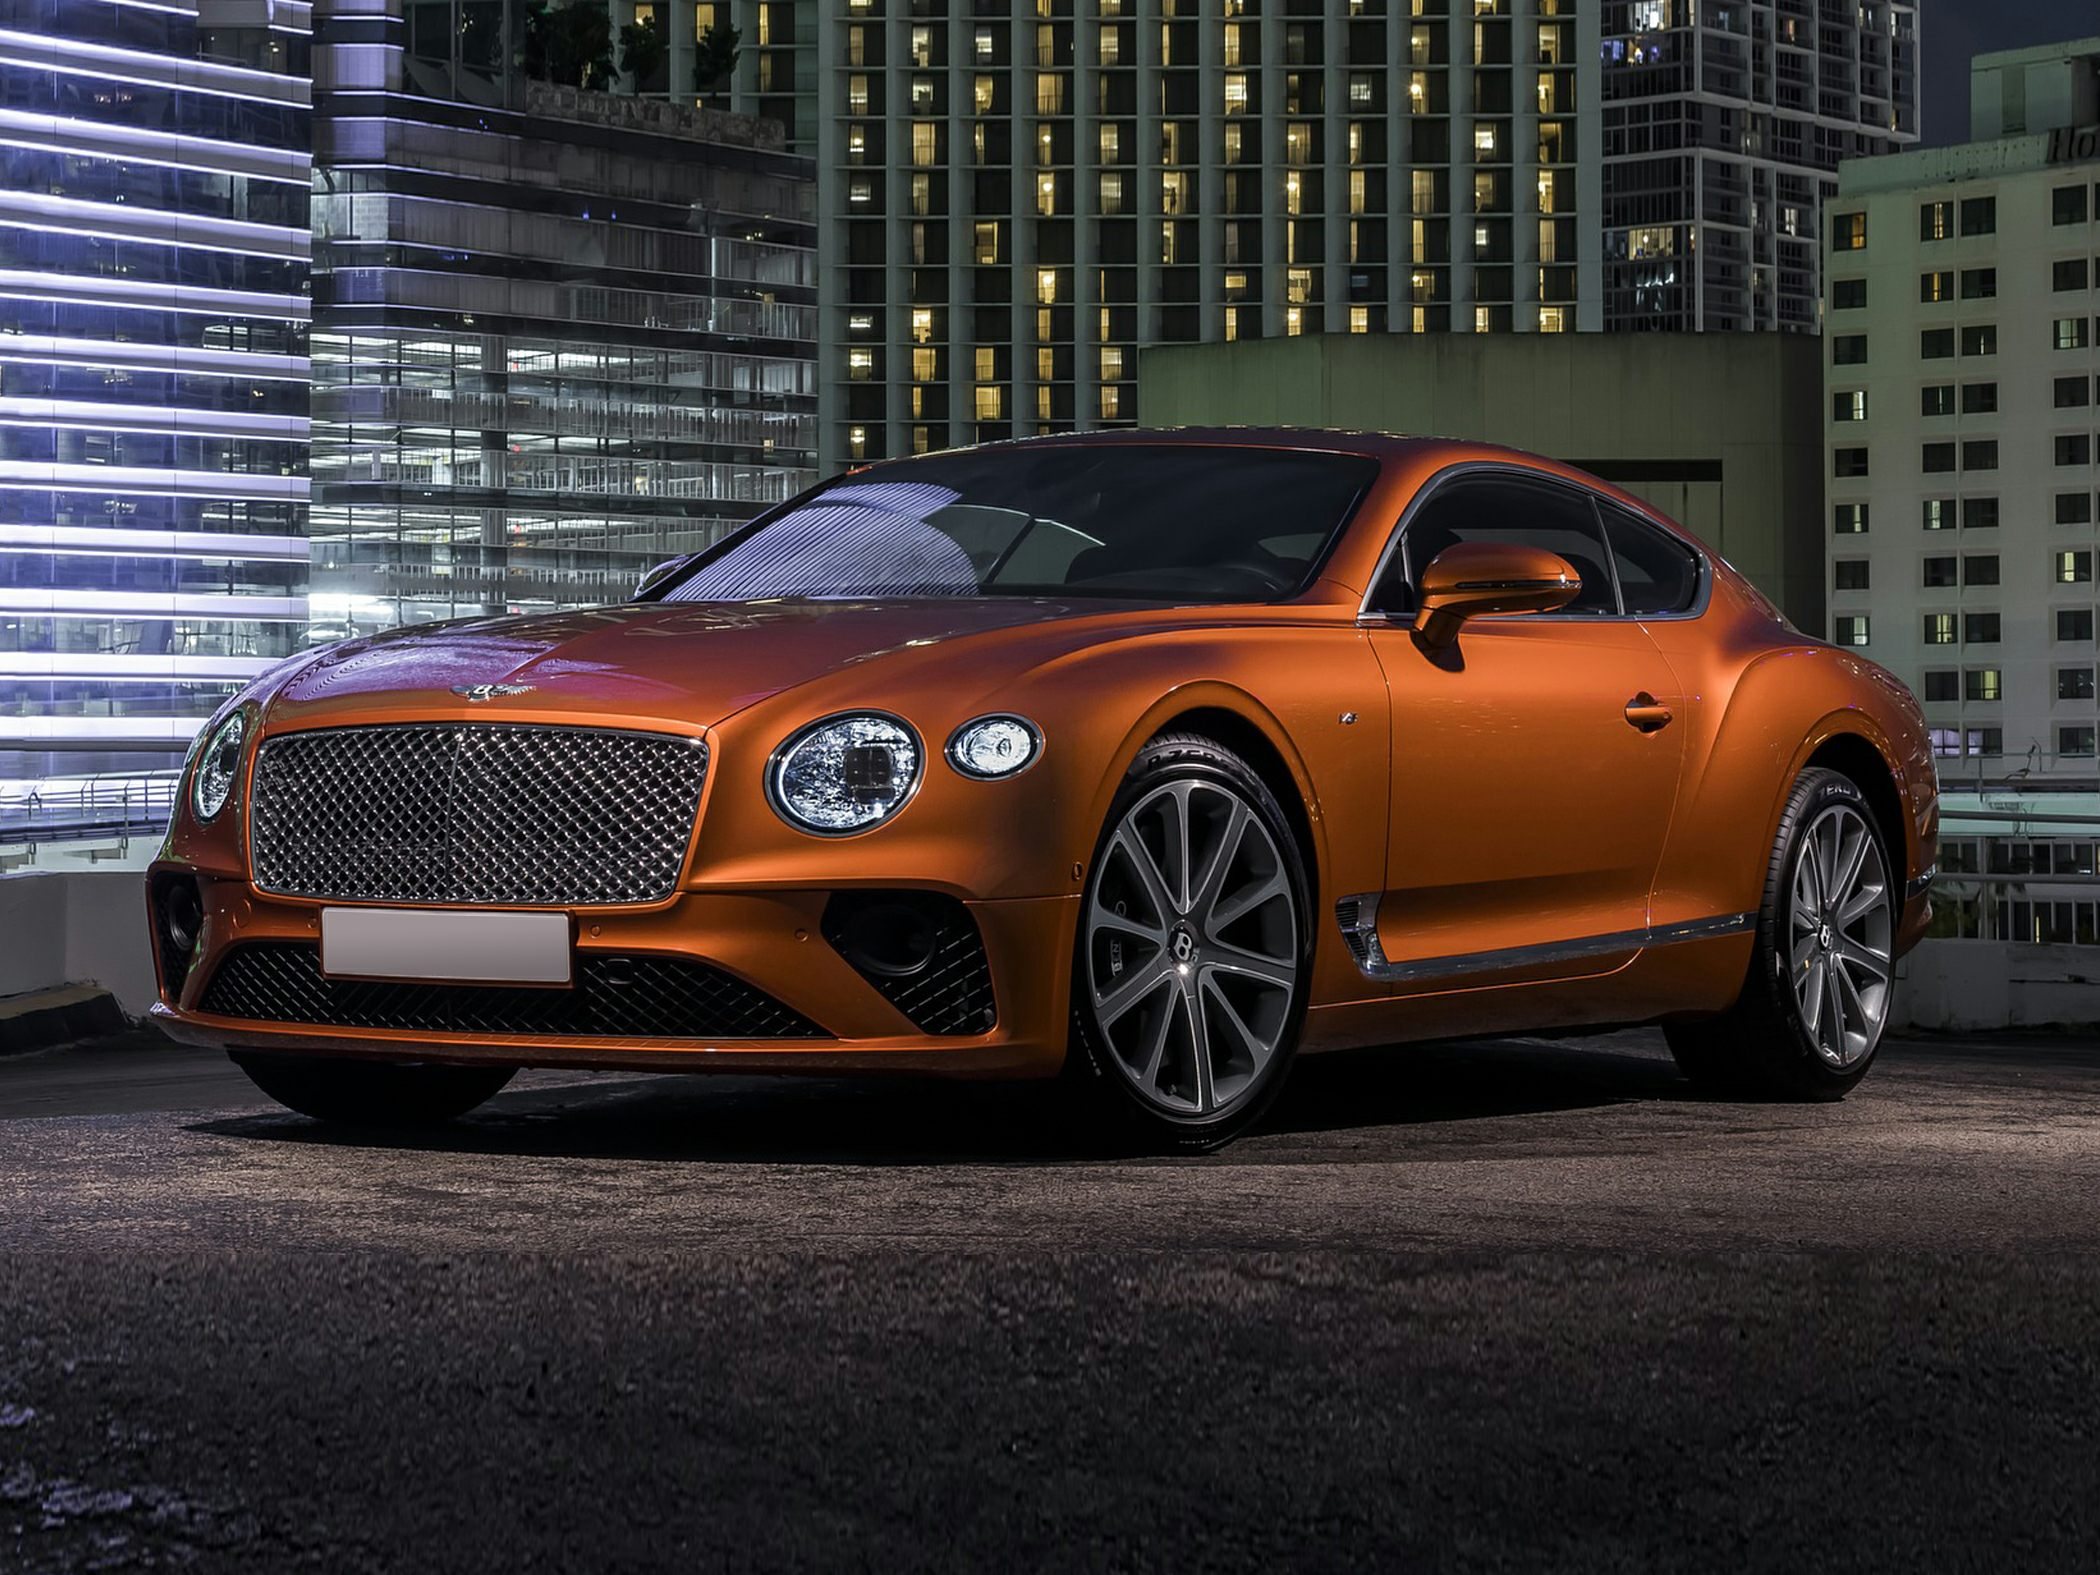 2020 Bentley Continental Gt V8 First Edition 2dr All Wheel Drive Coupe Specs And Prices